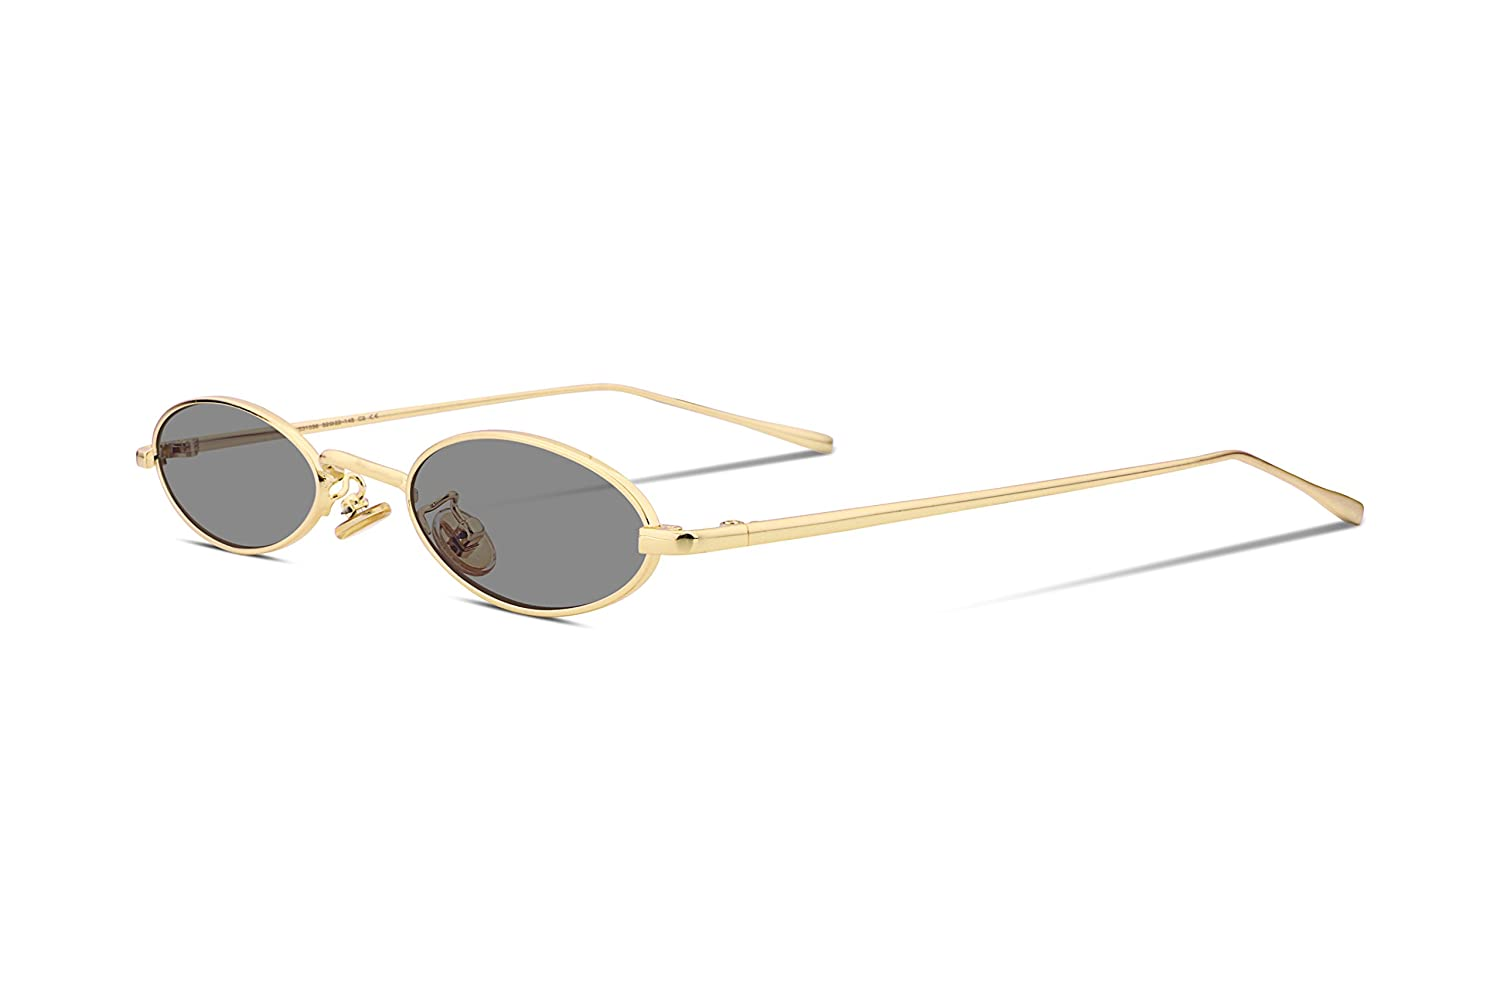 4aed80f3d31 Amazon.com  FEISEDY Vintage Slender Oval Sunglasses Small Metal Frame Candy  Colors B2277  Clothing